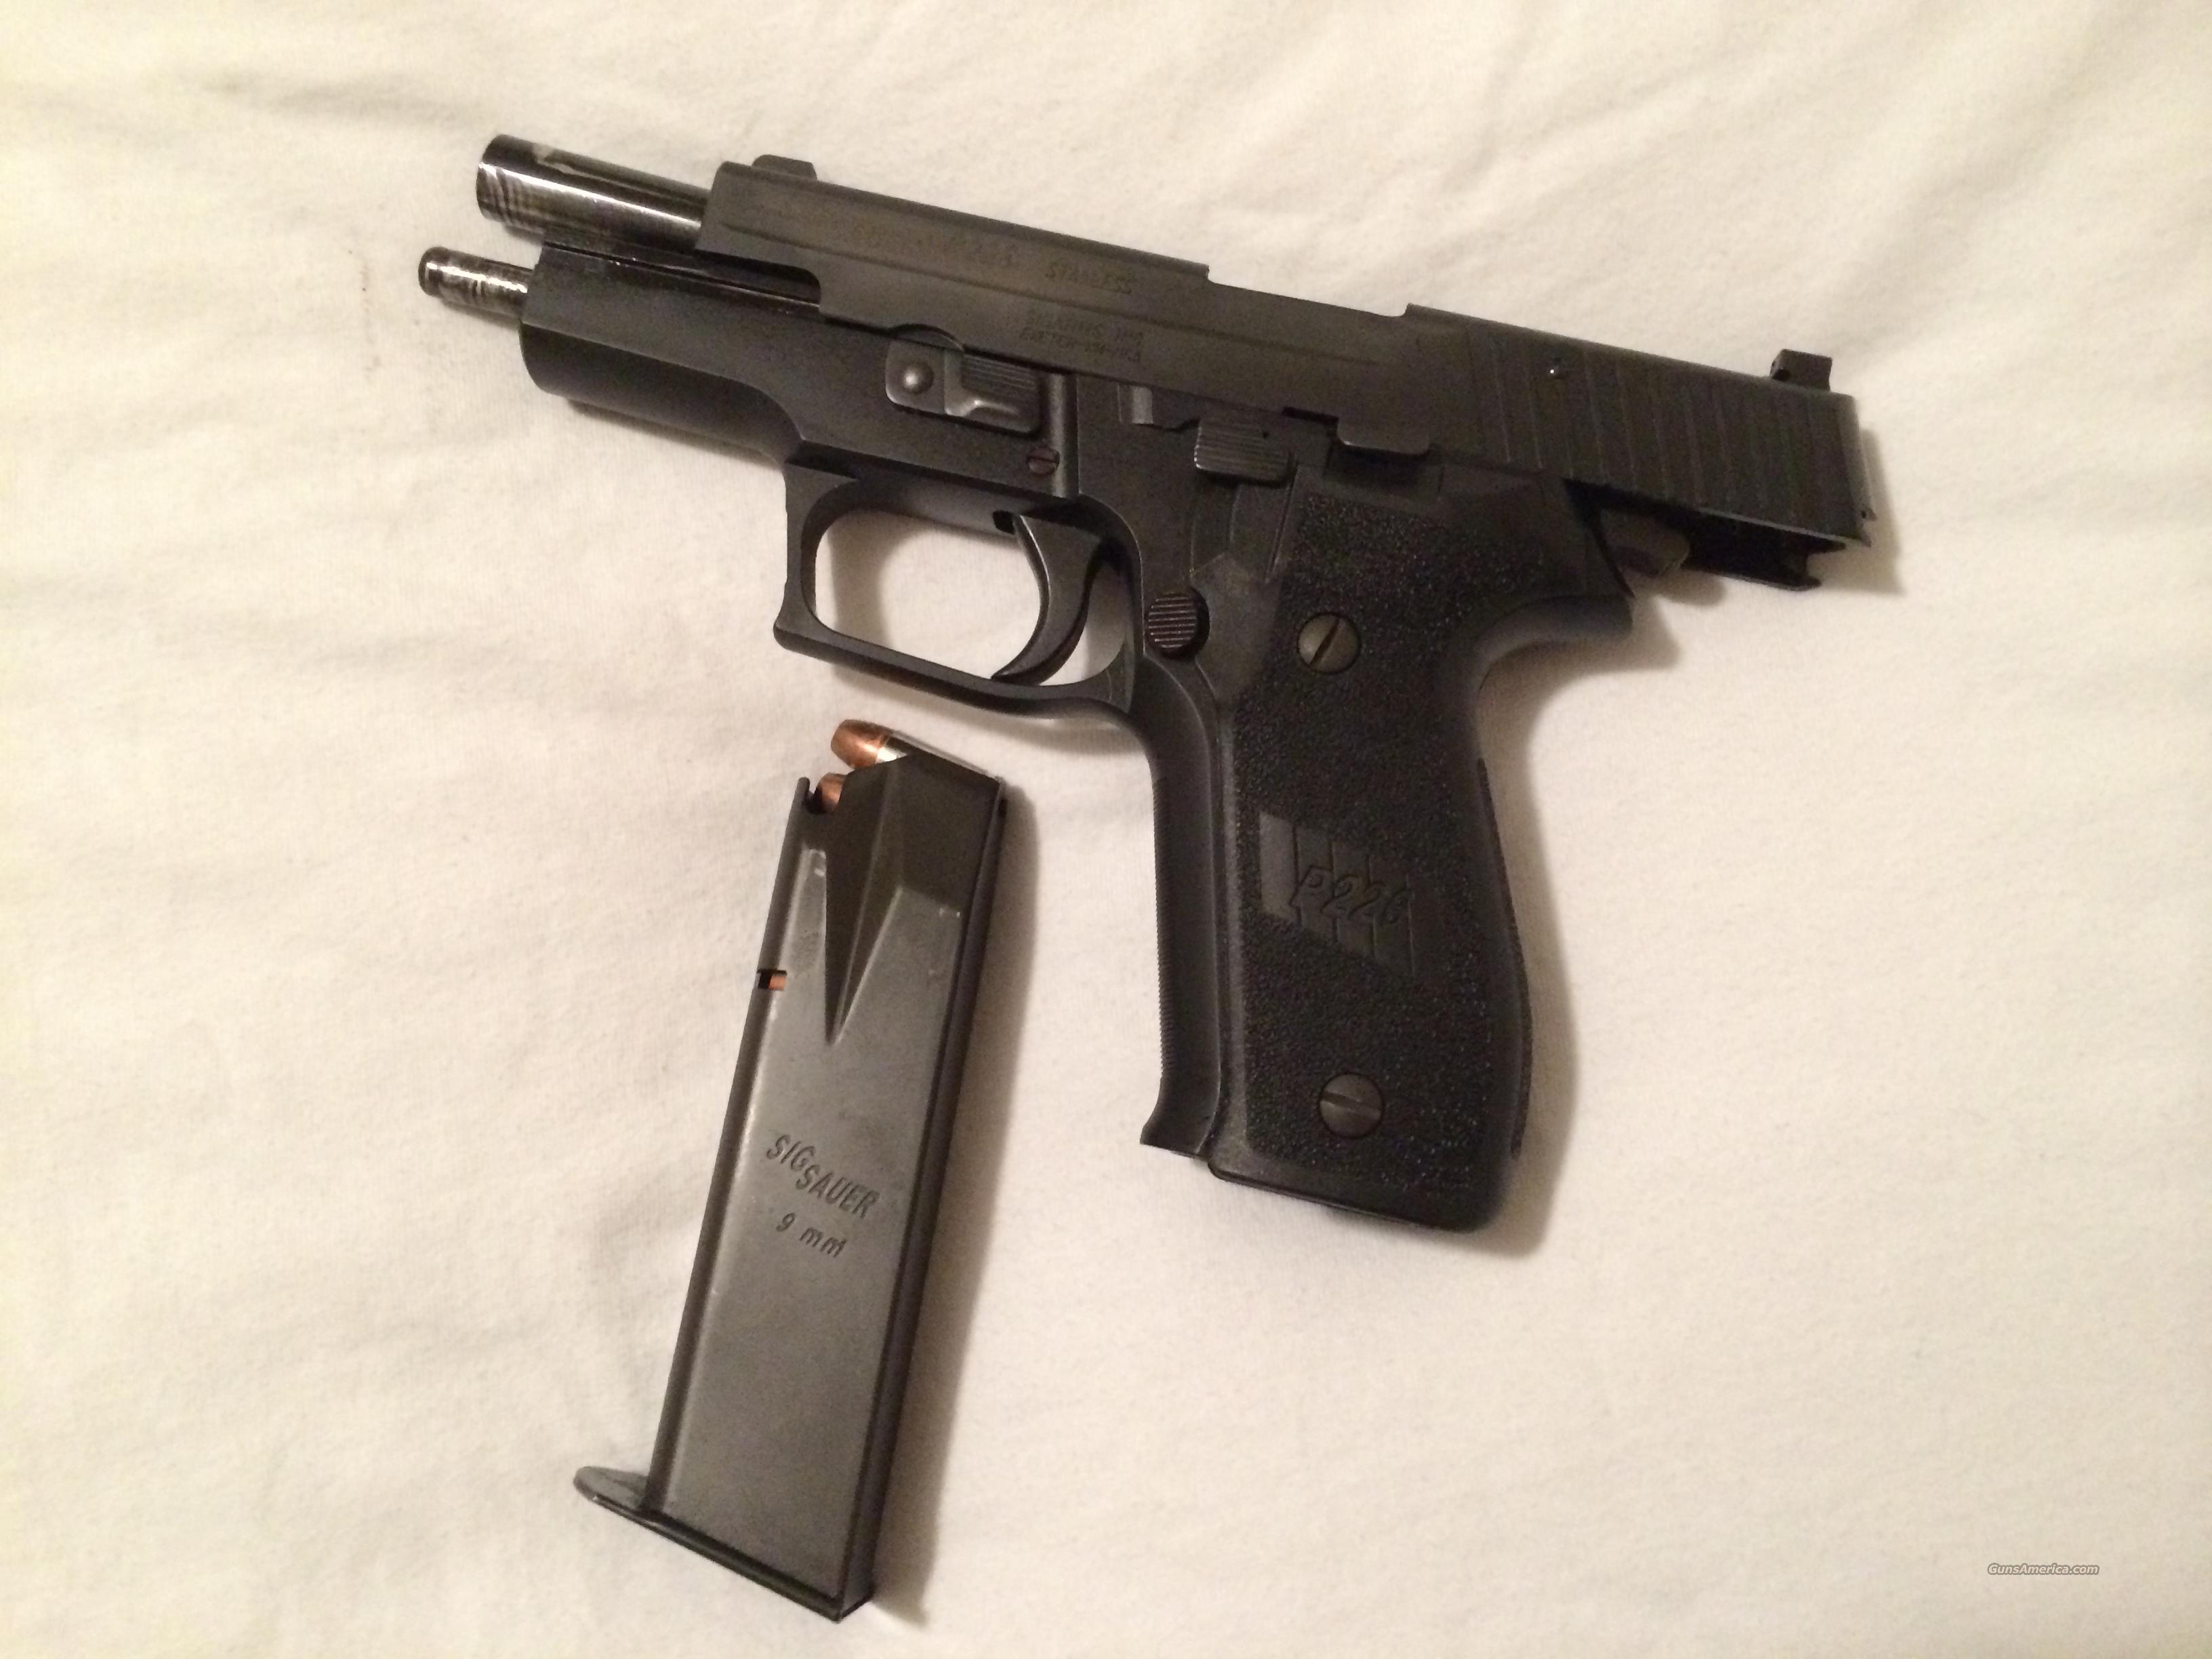 Sig Sauer P226 9mm Black Stainless  Guns > Pistols > Sig - Sauer/Sigarms Pistols > P226